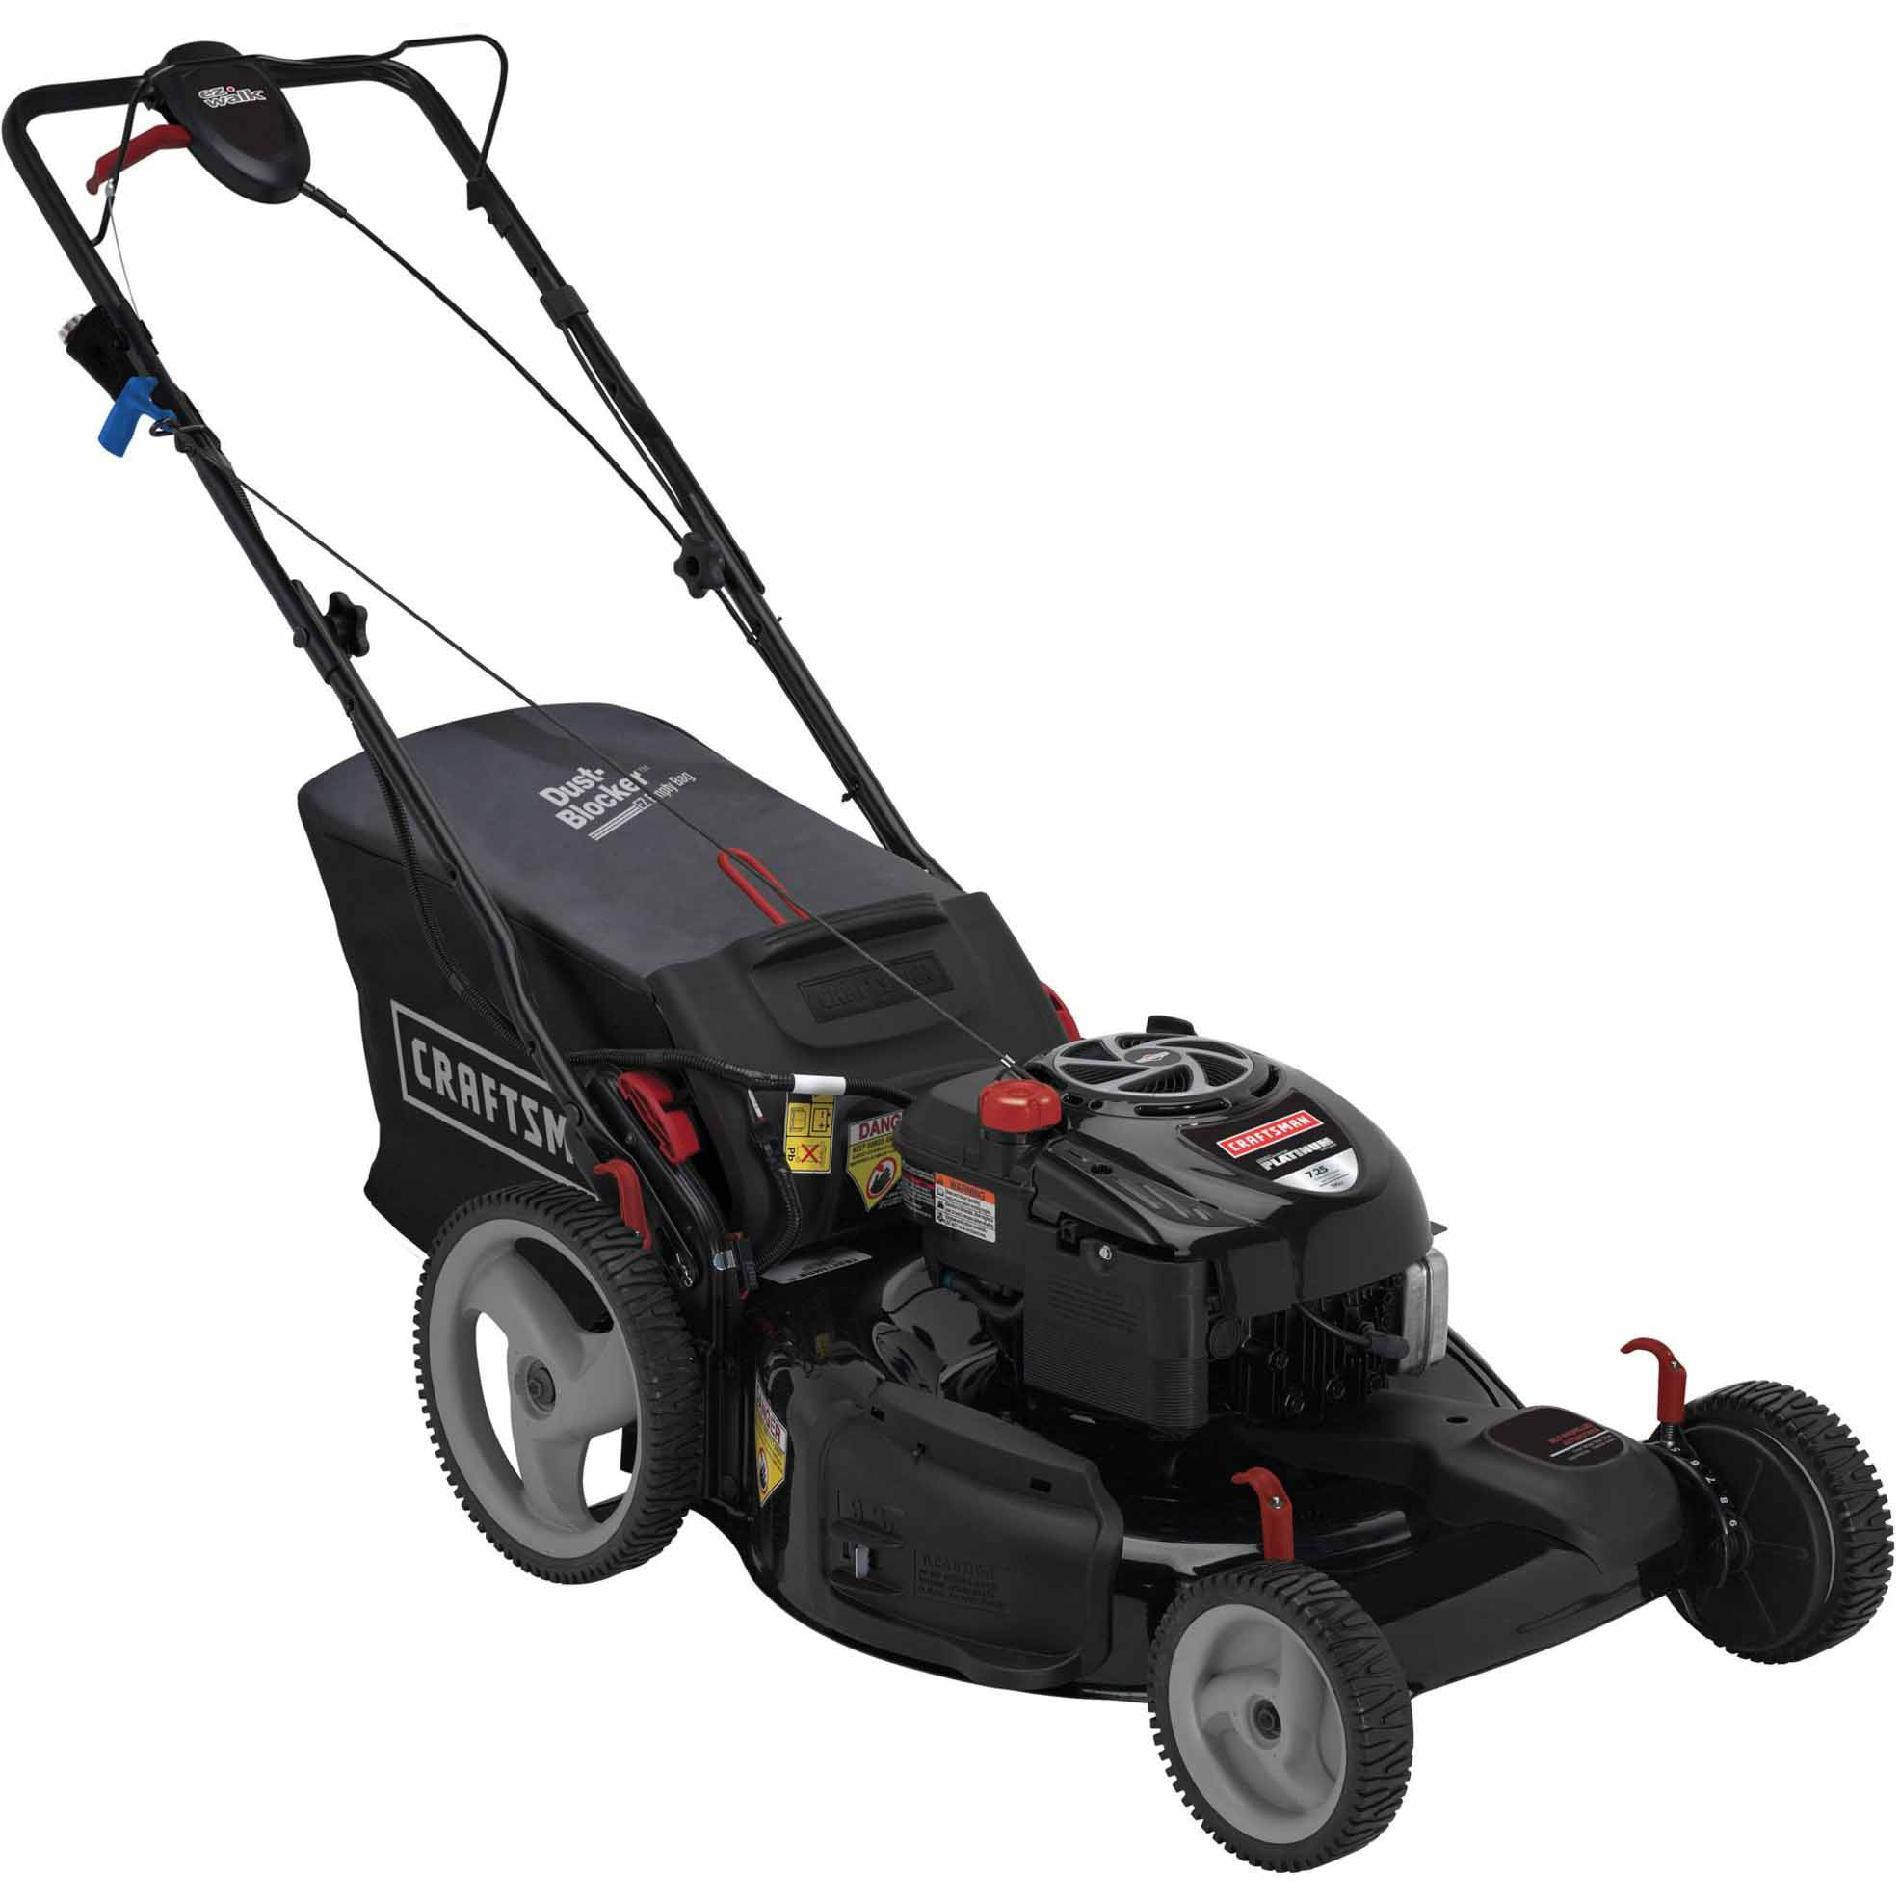 "Craftsman 190cc* Briggs & Stratton Platinum Engine, 22"" Front Drive Self-Propelled EZ Lawn Mower 50 States"